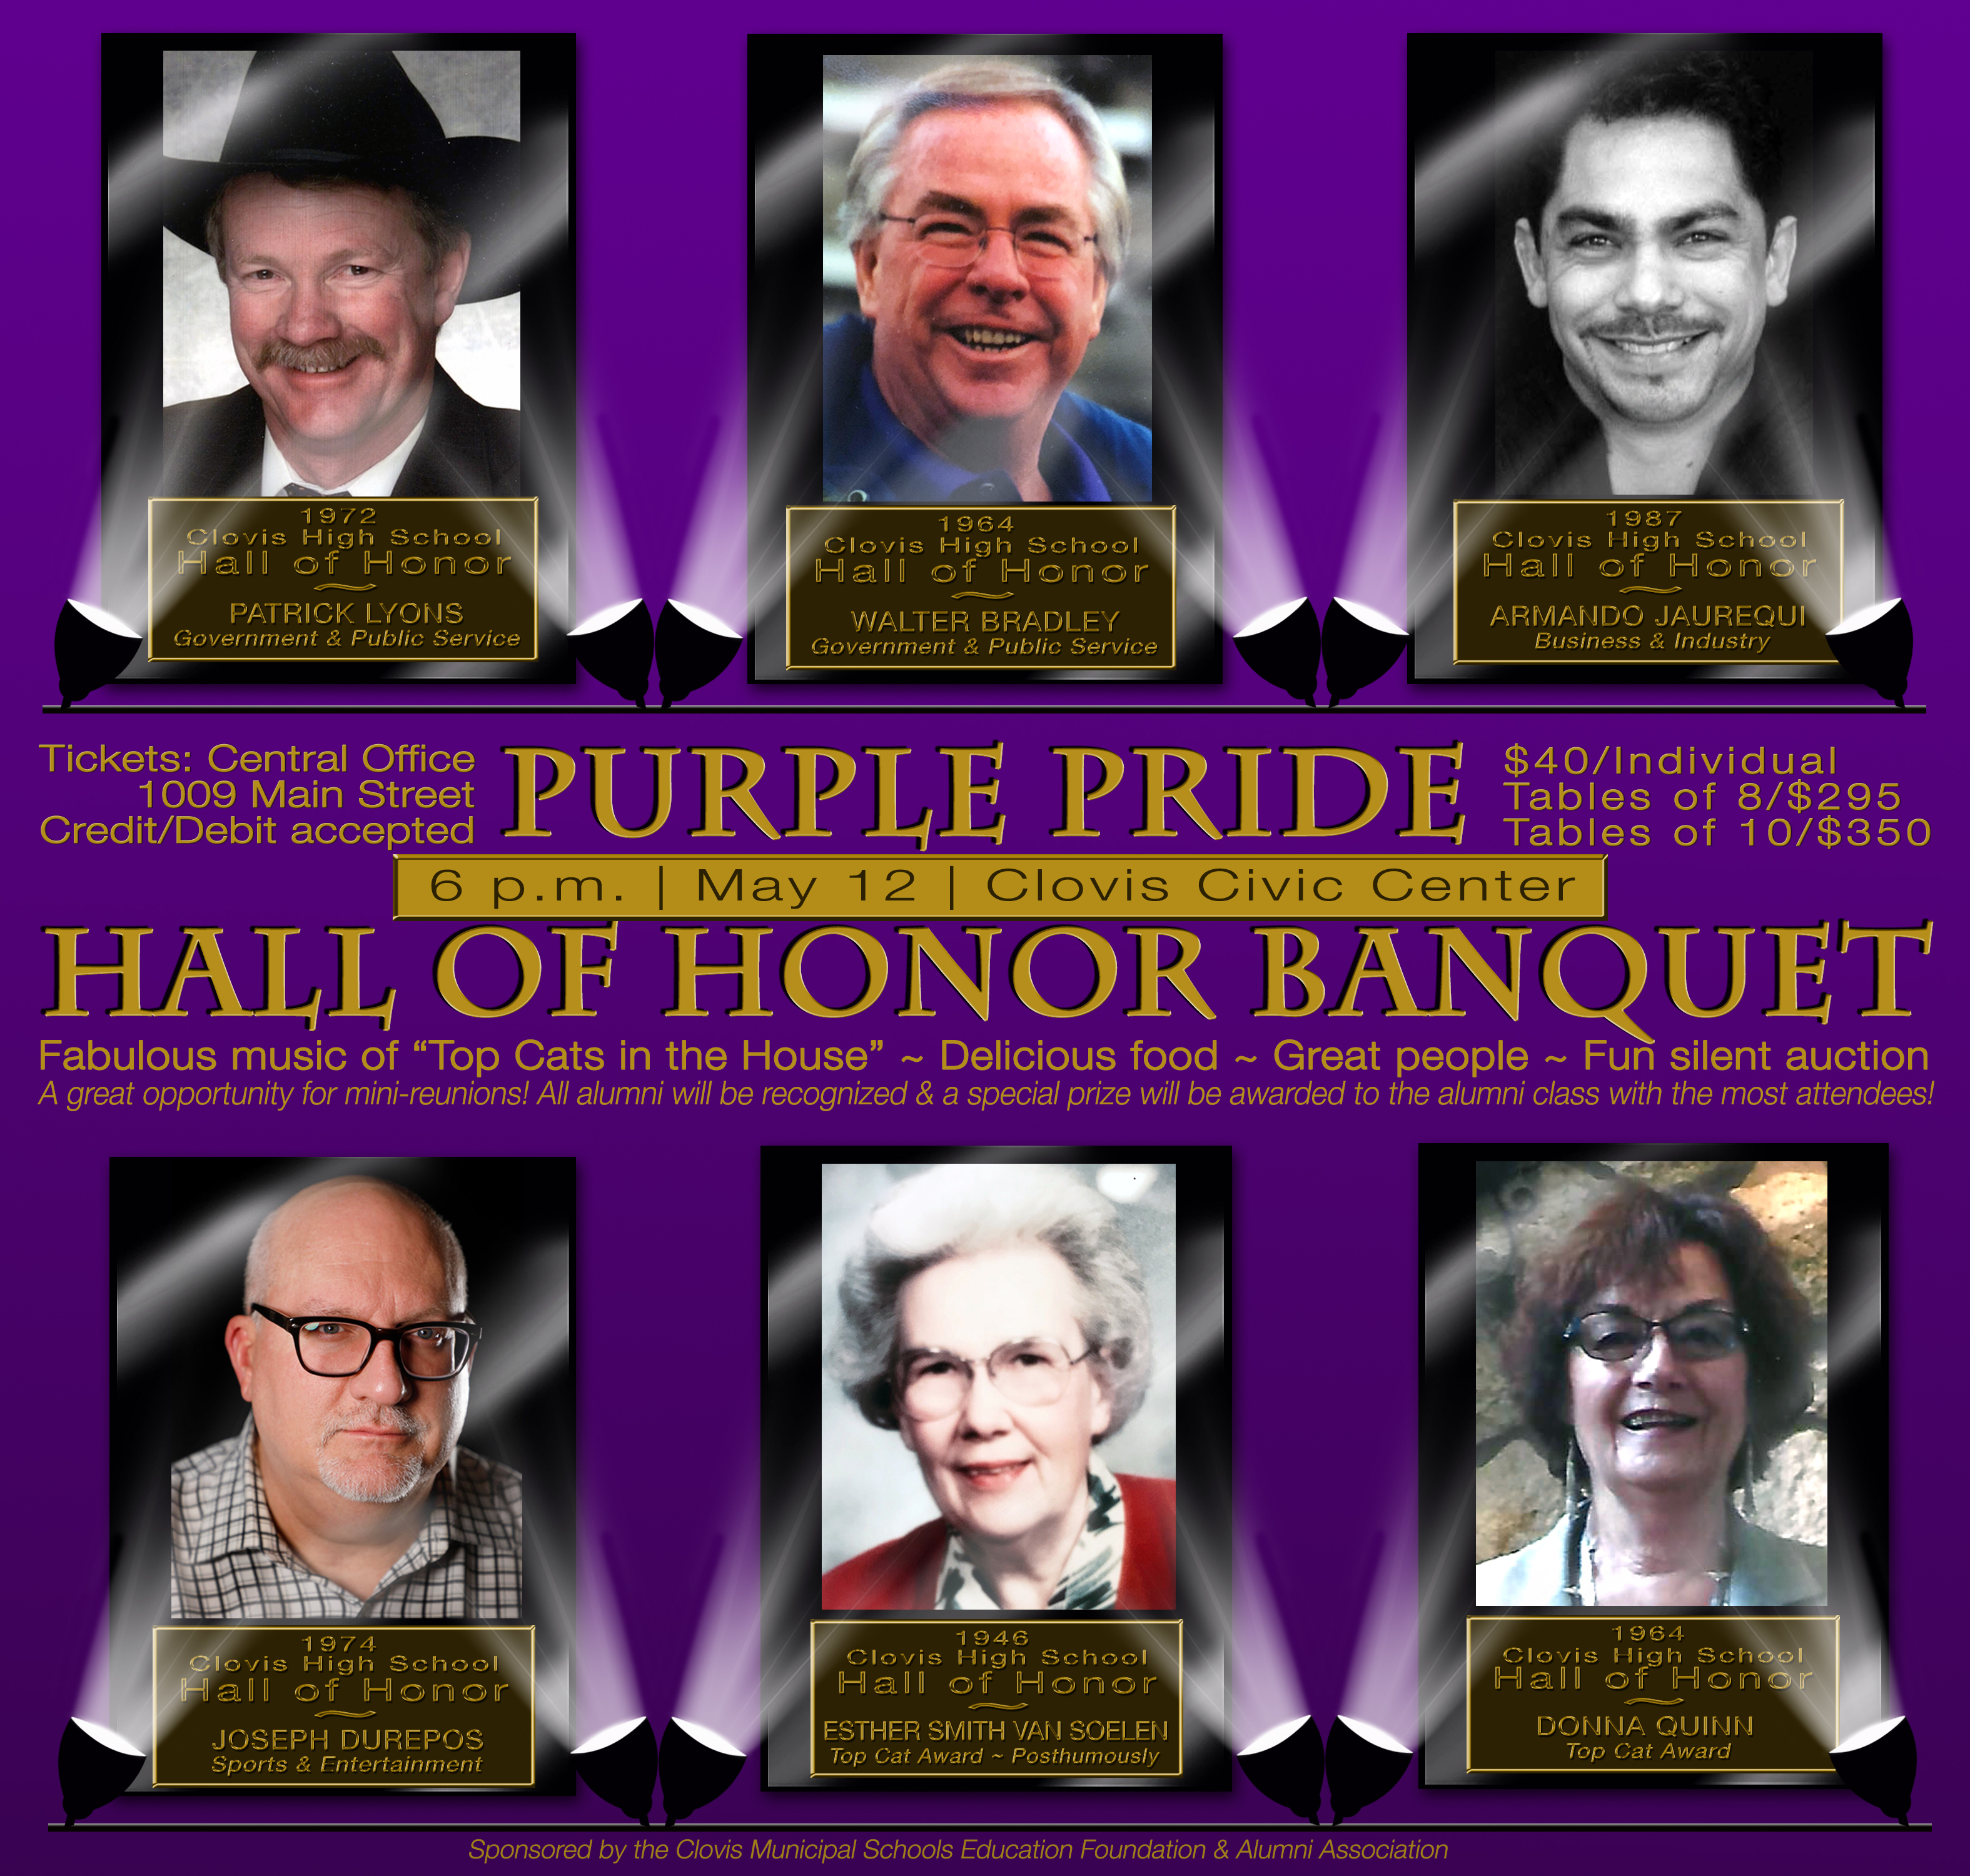 Image with text announcing Hall of Honor Banquet